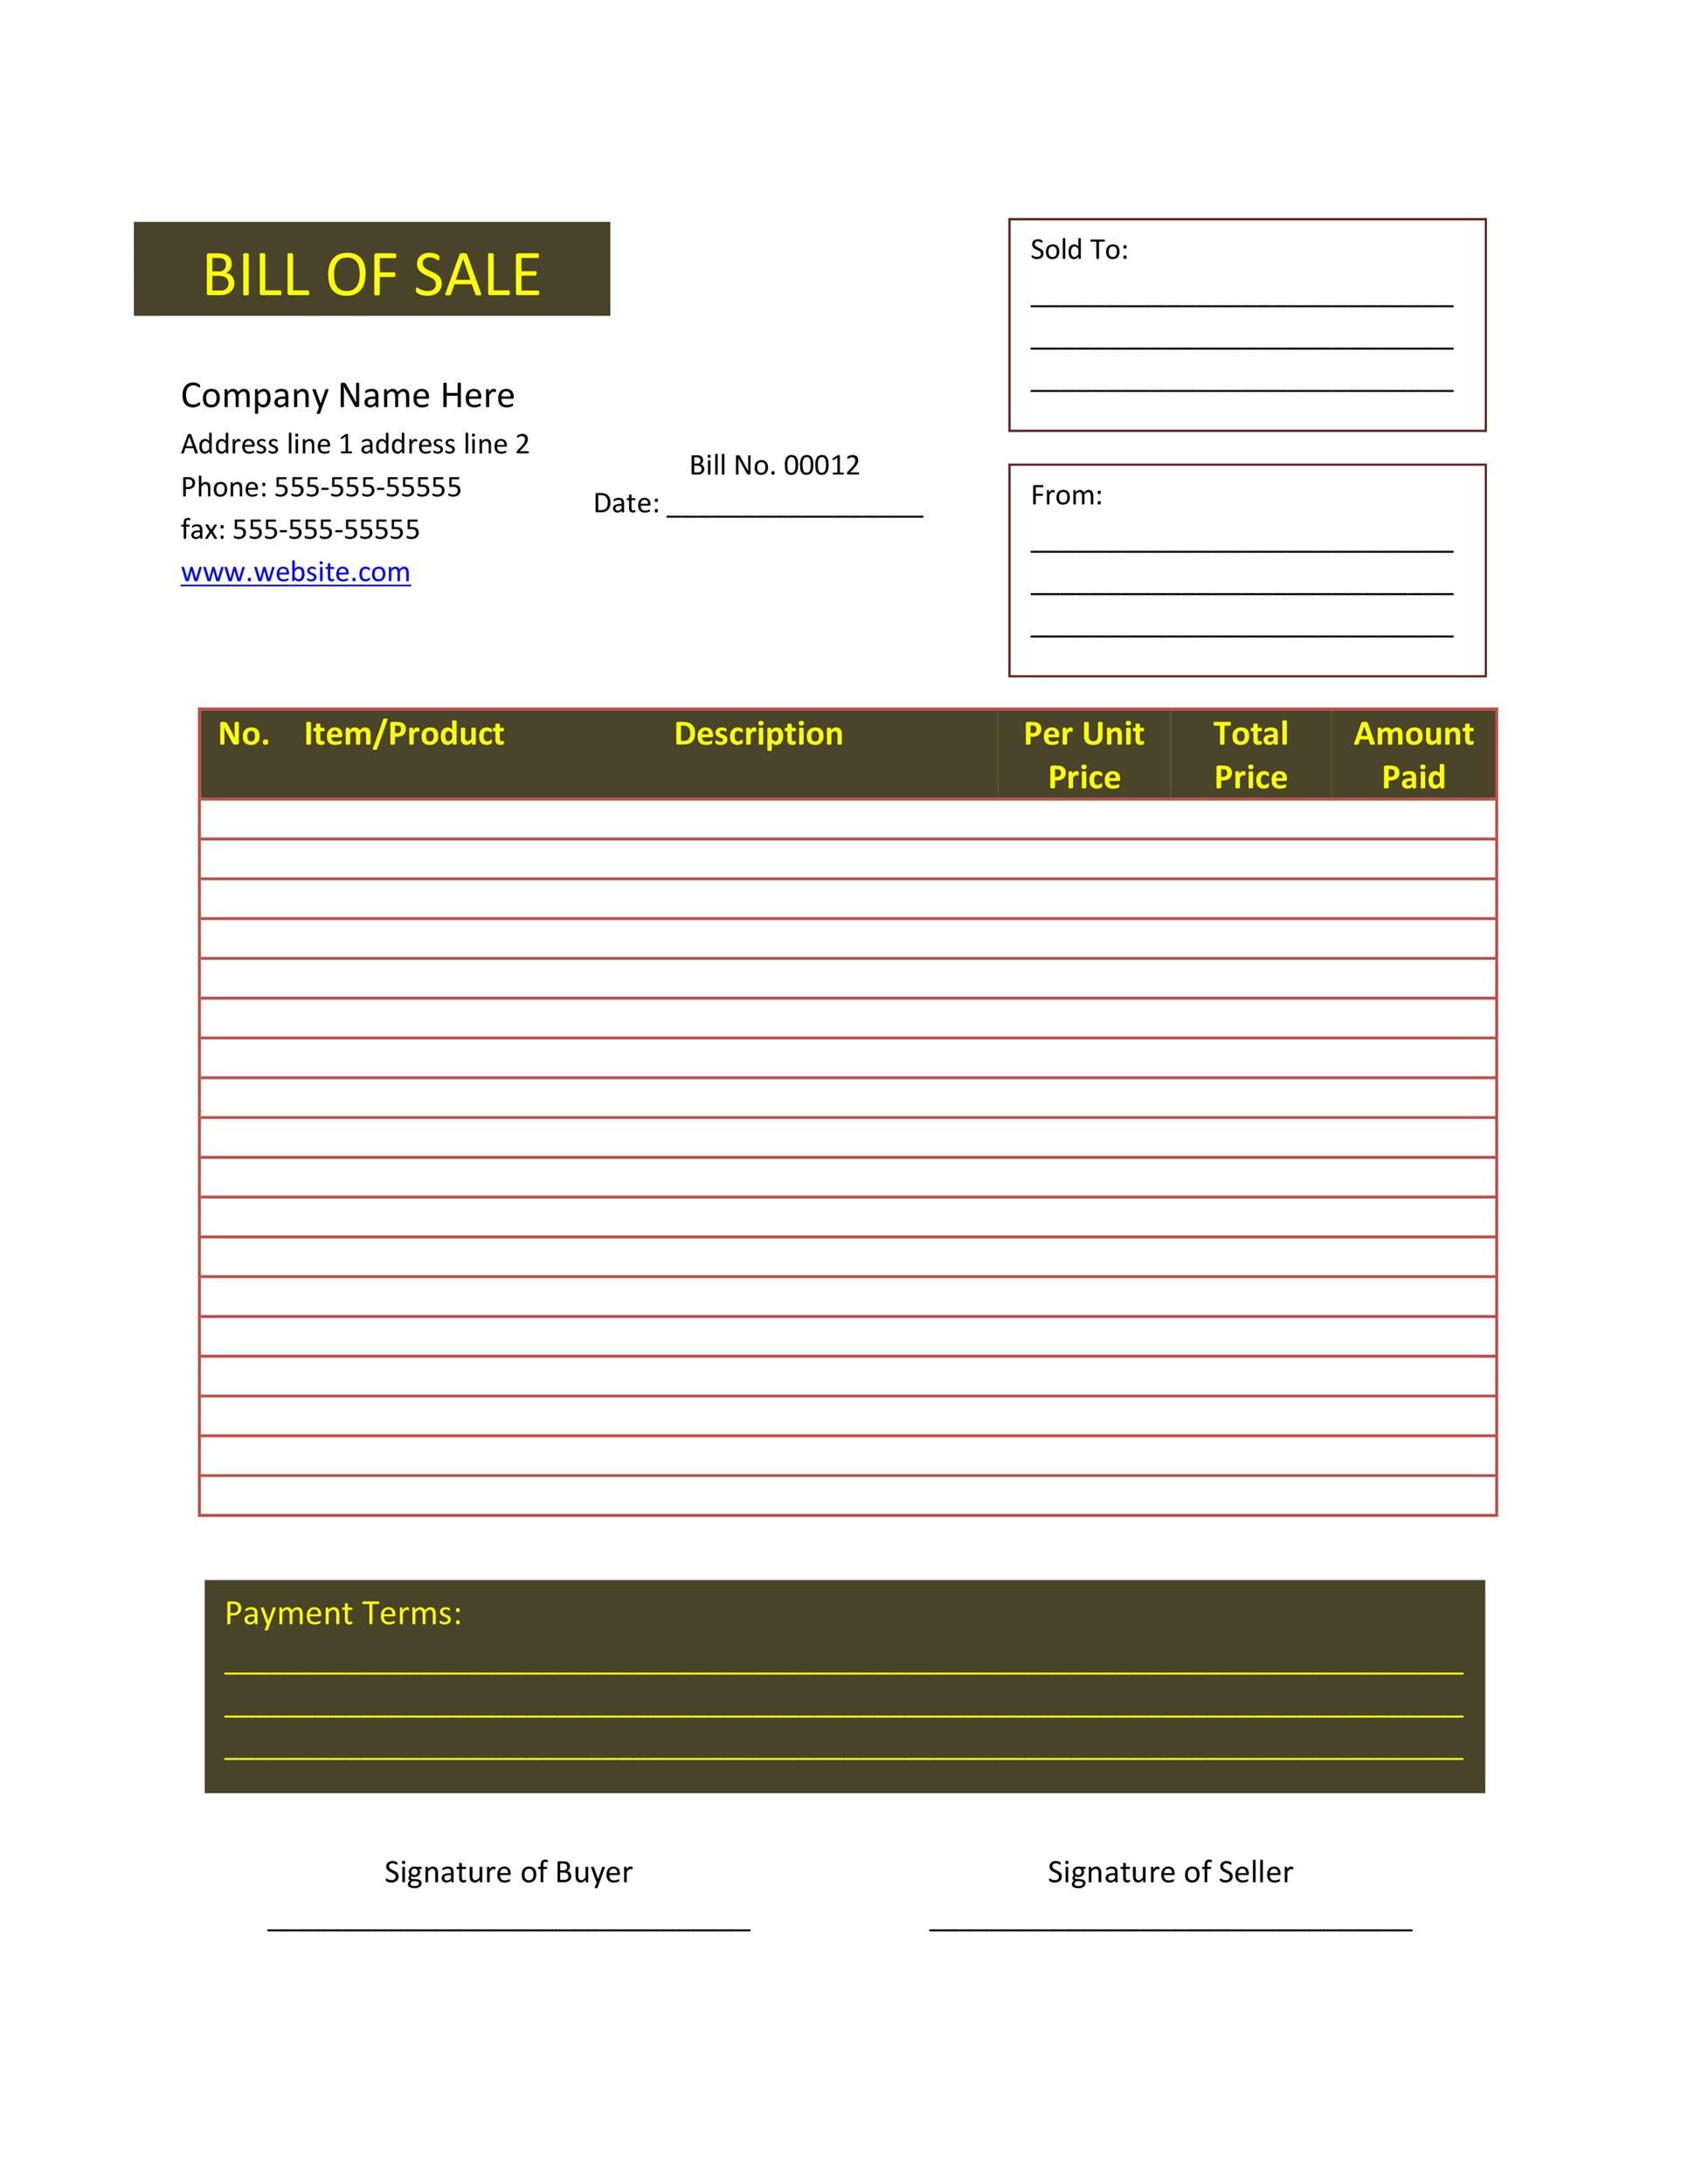 Free bill of sale template 41